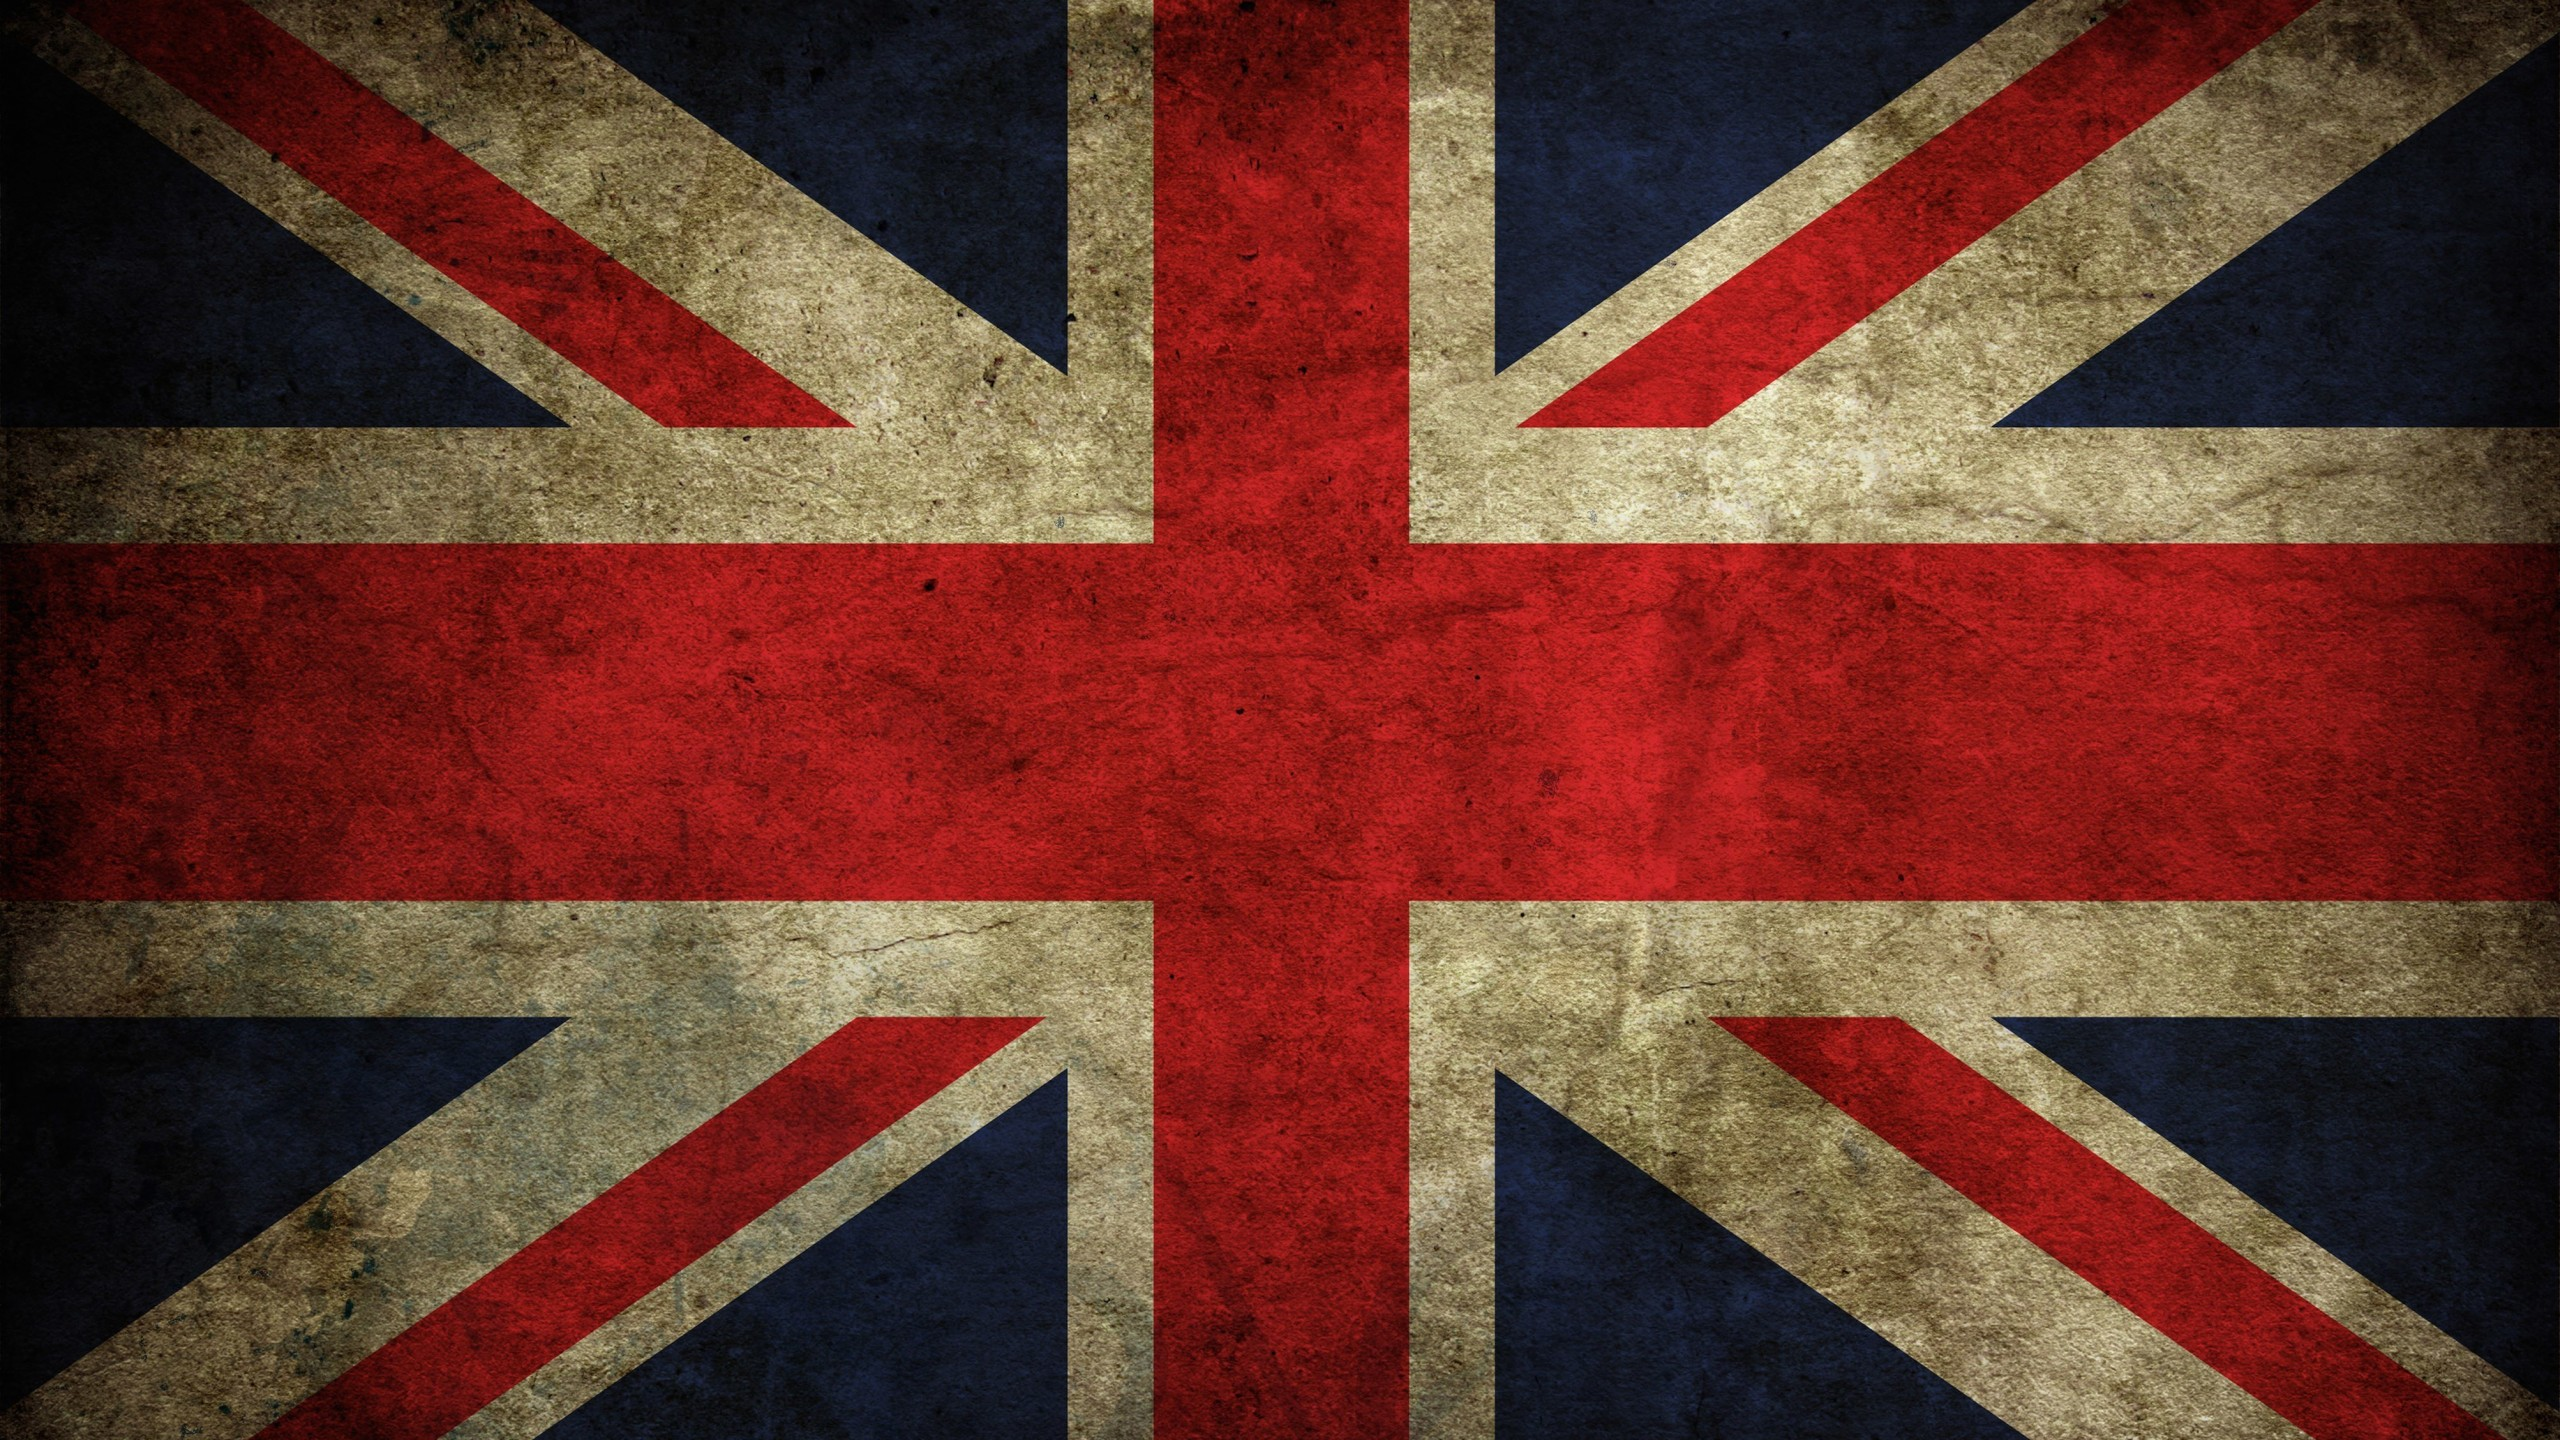 Grunge Flag Of The United Kingdom Wallpaper for Social Media YouTube Channel Art